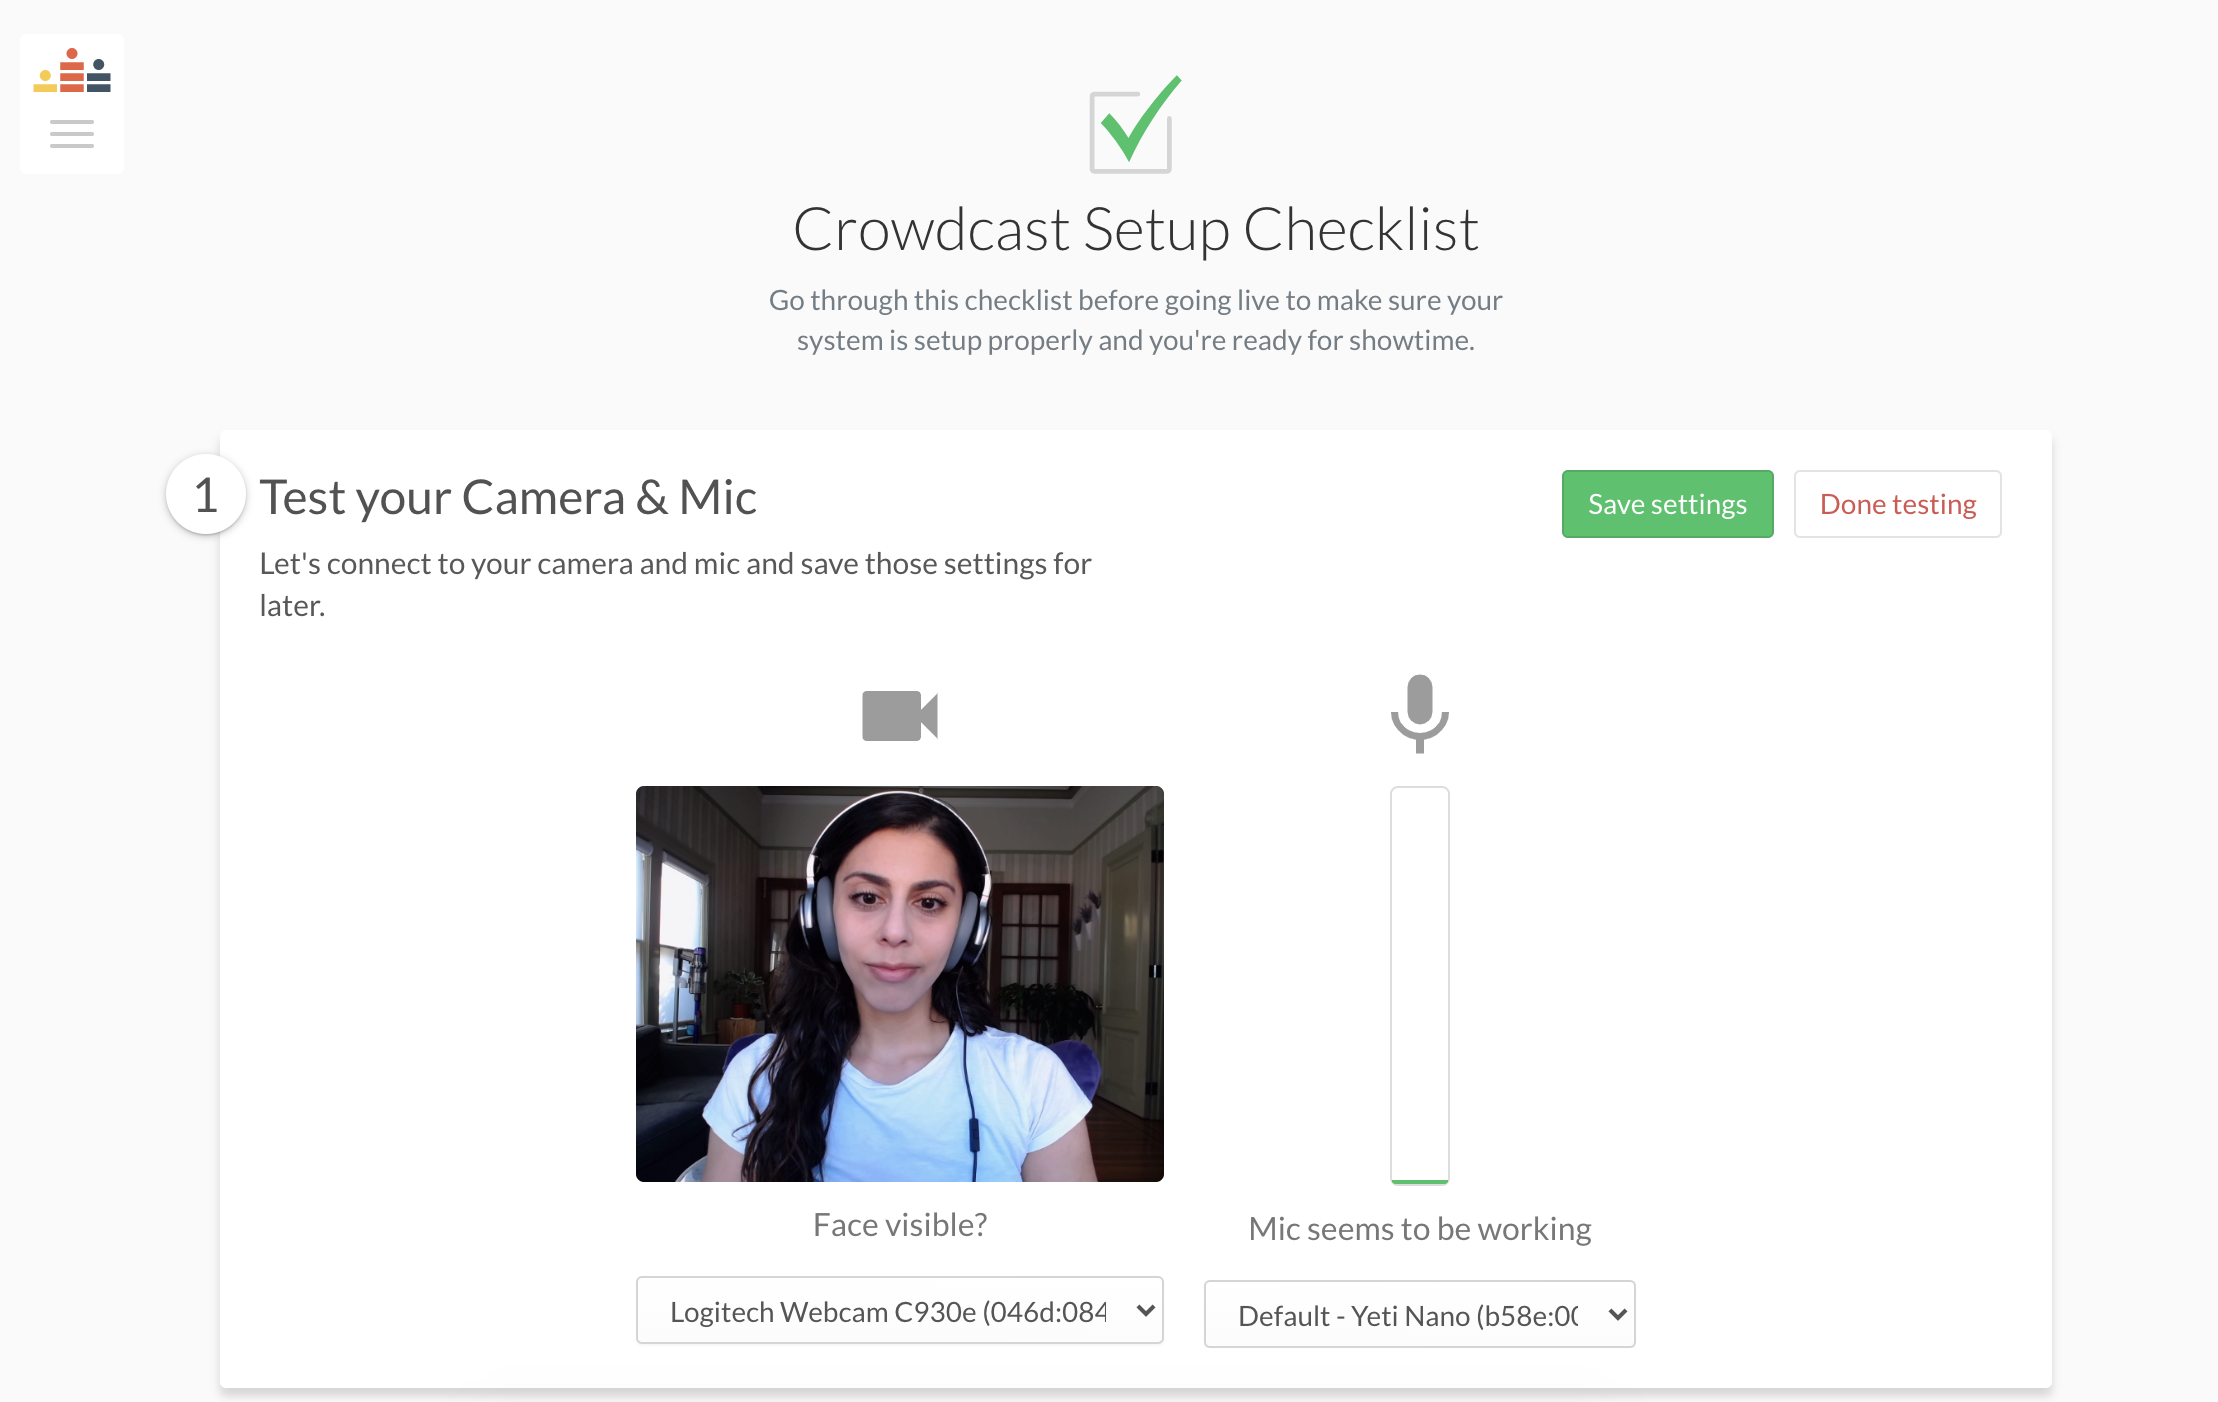 clicking on test camera & mic will reveal your camera and audio input options.